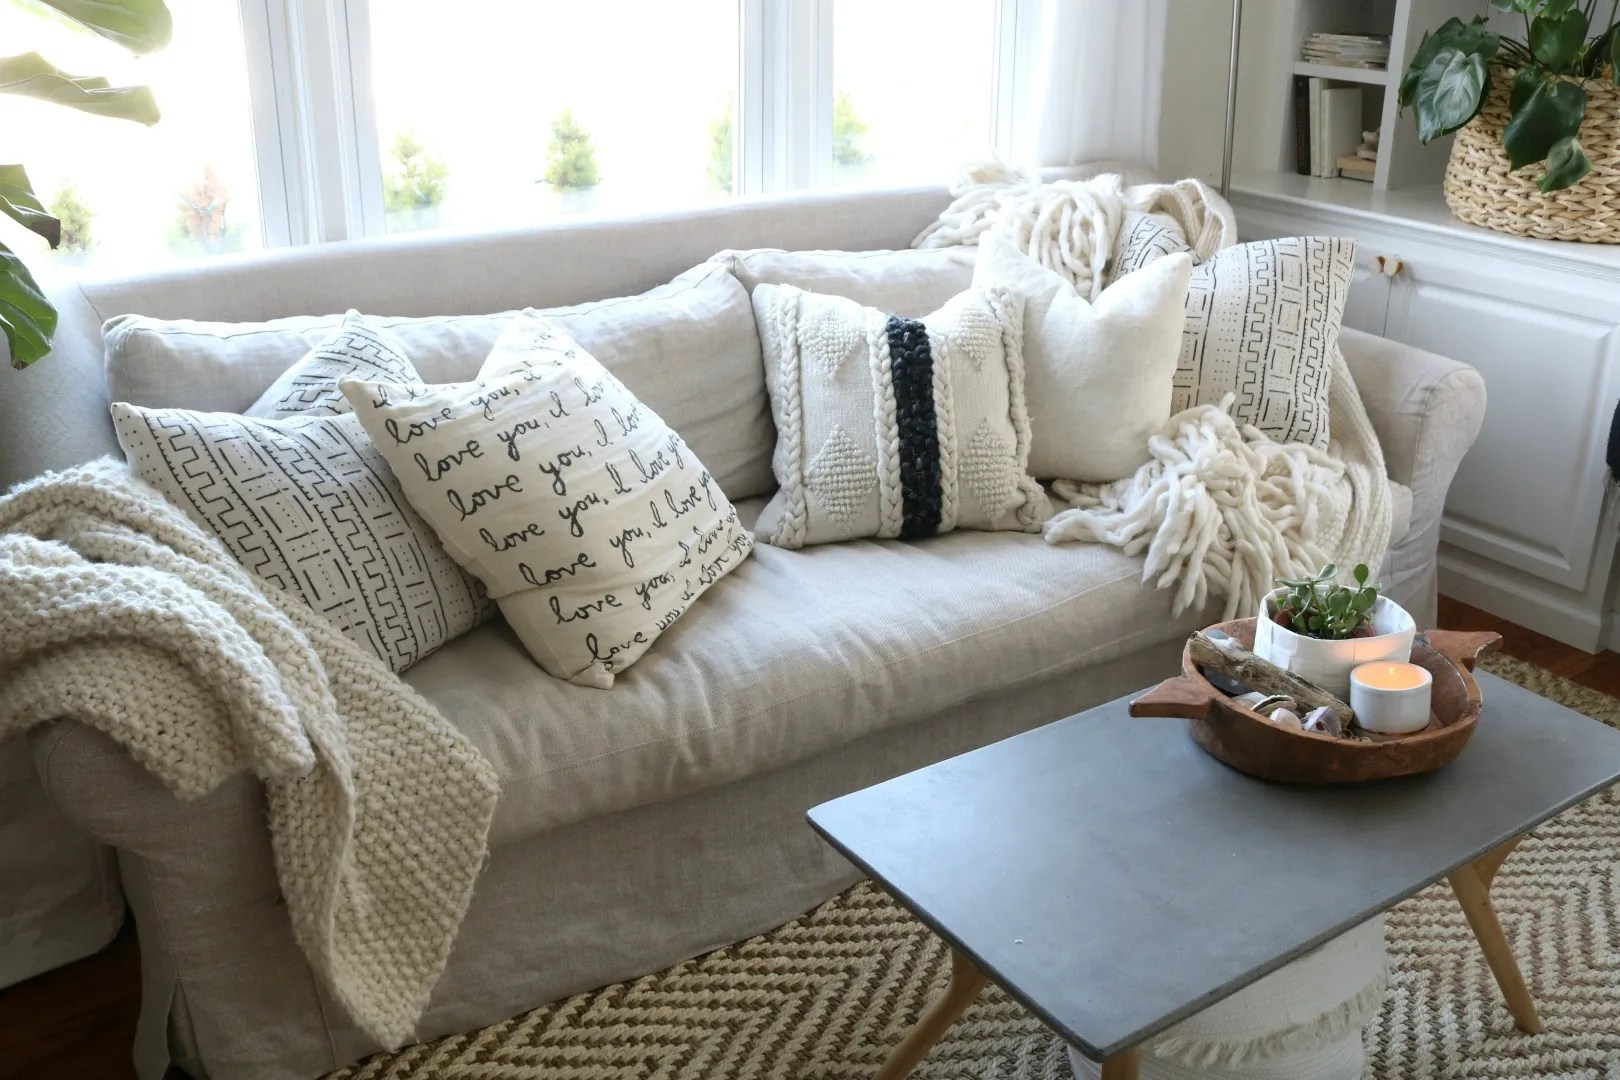 to mix color and patterns with pillows